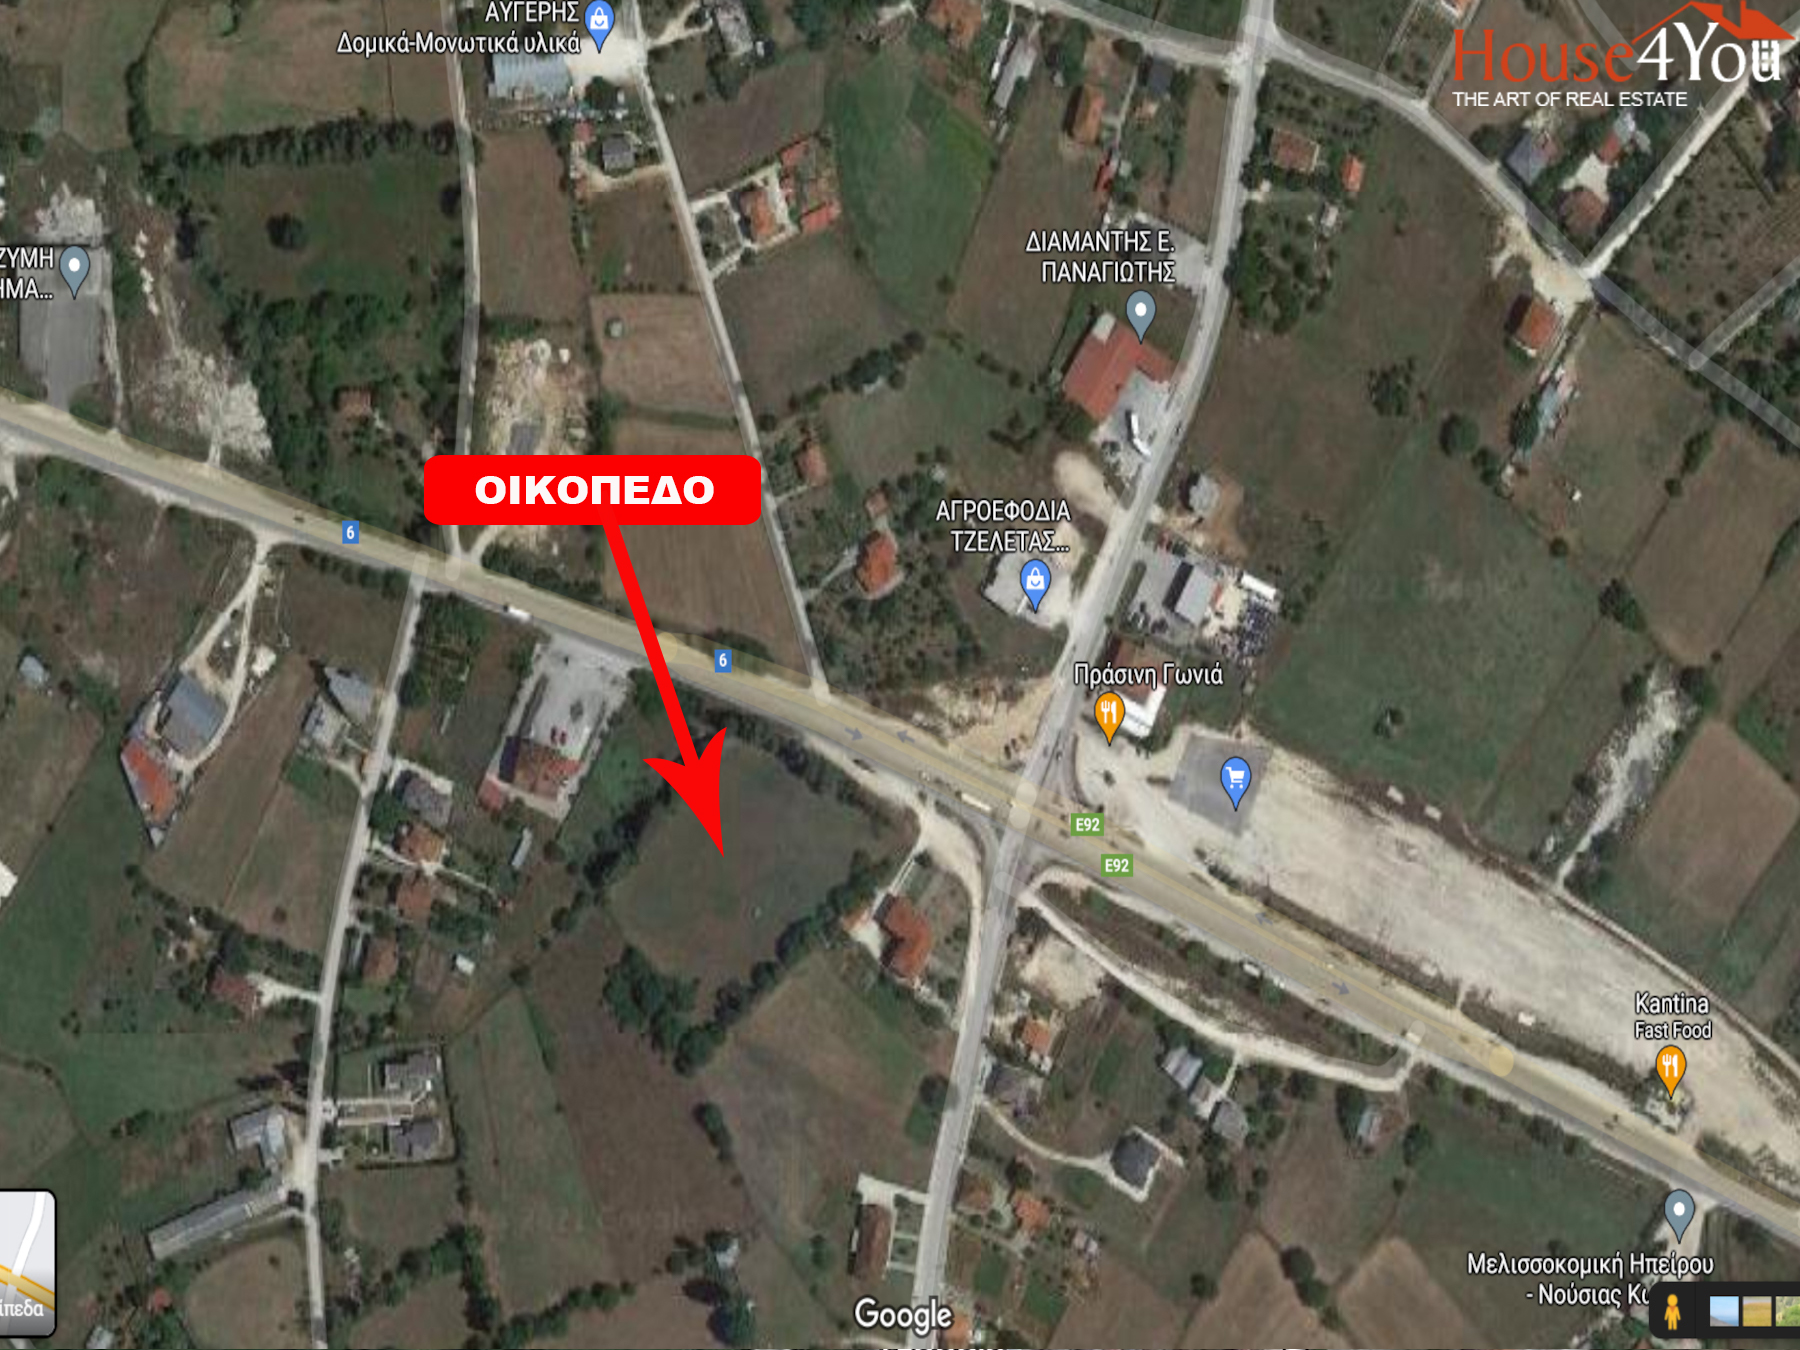 For sale a plot of 4 acres in Vounoplagia, Ioannina